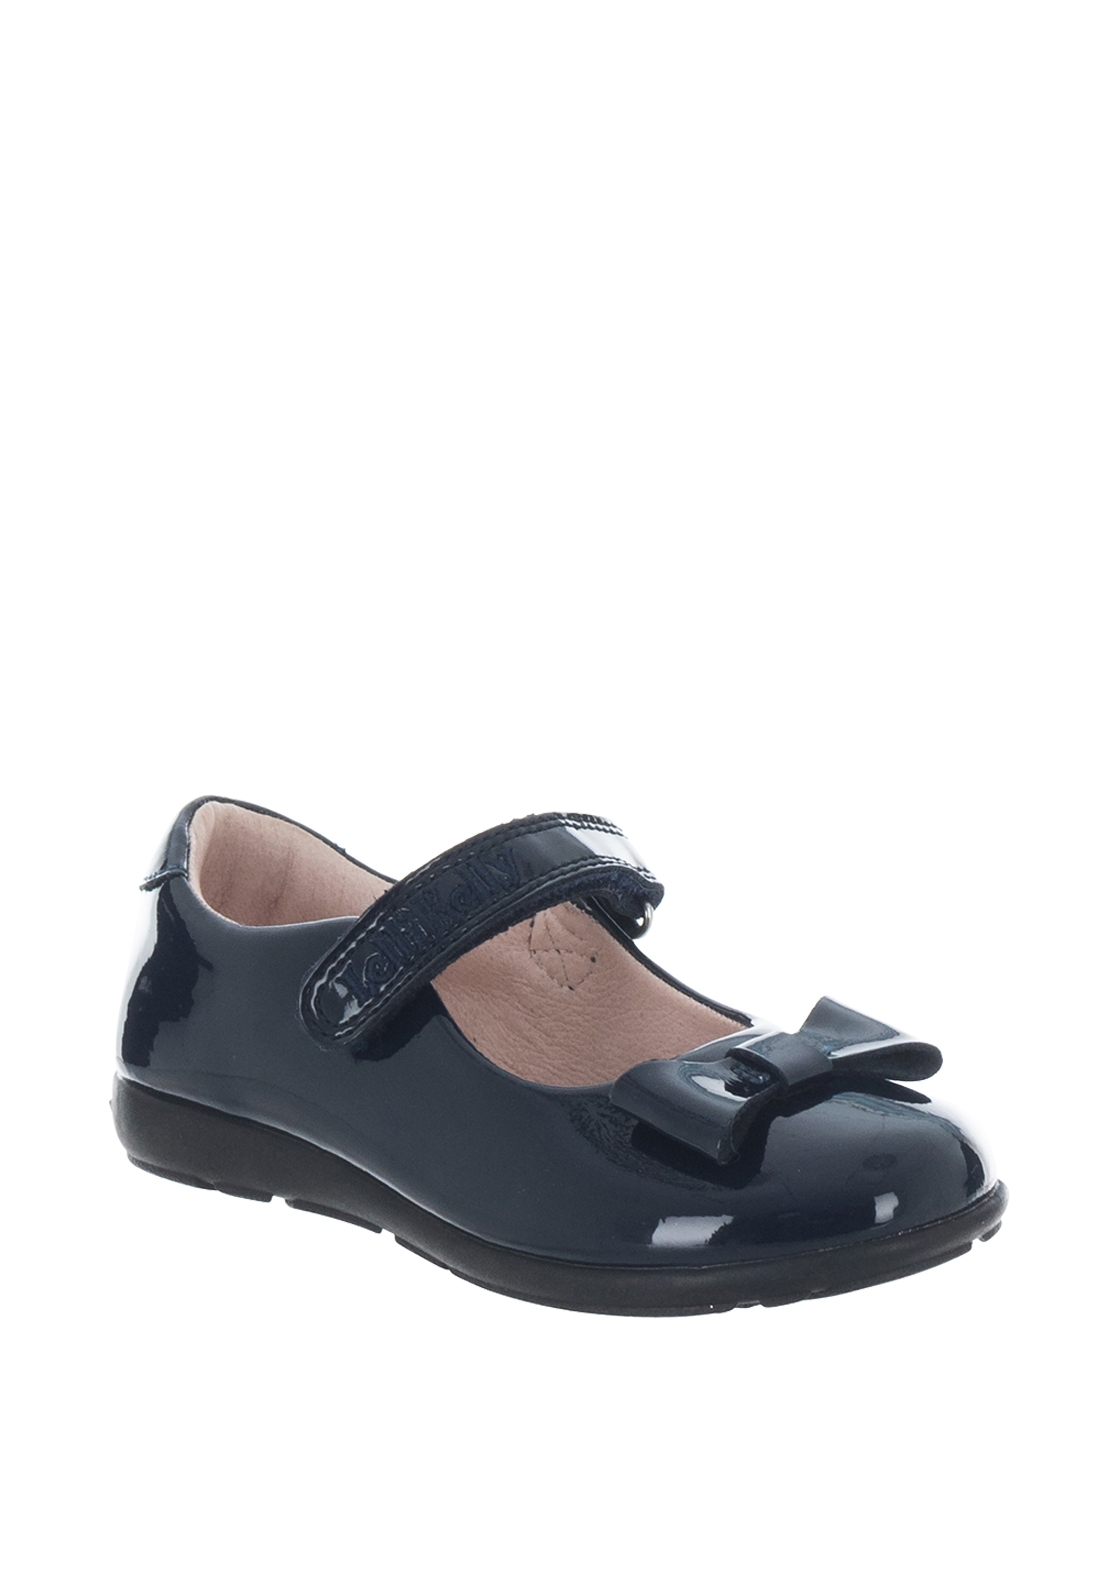 Lelli Kelly Leather Bow Patent Strap School Shoes, Navy